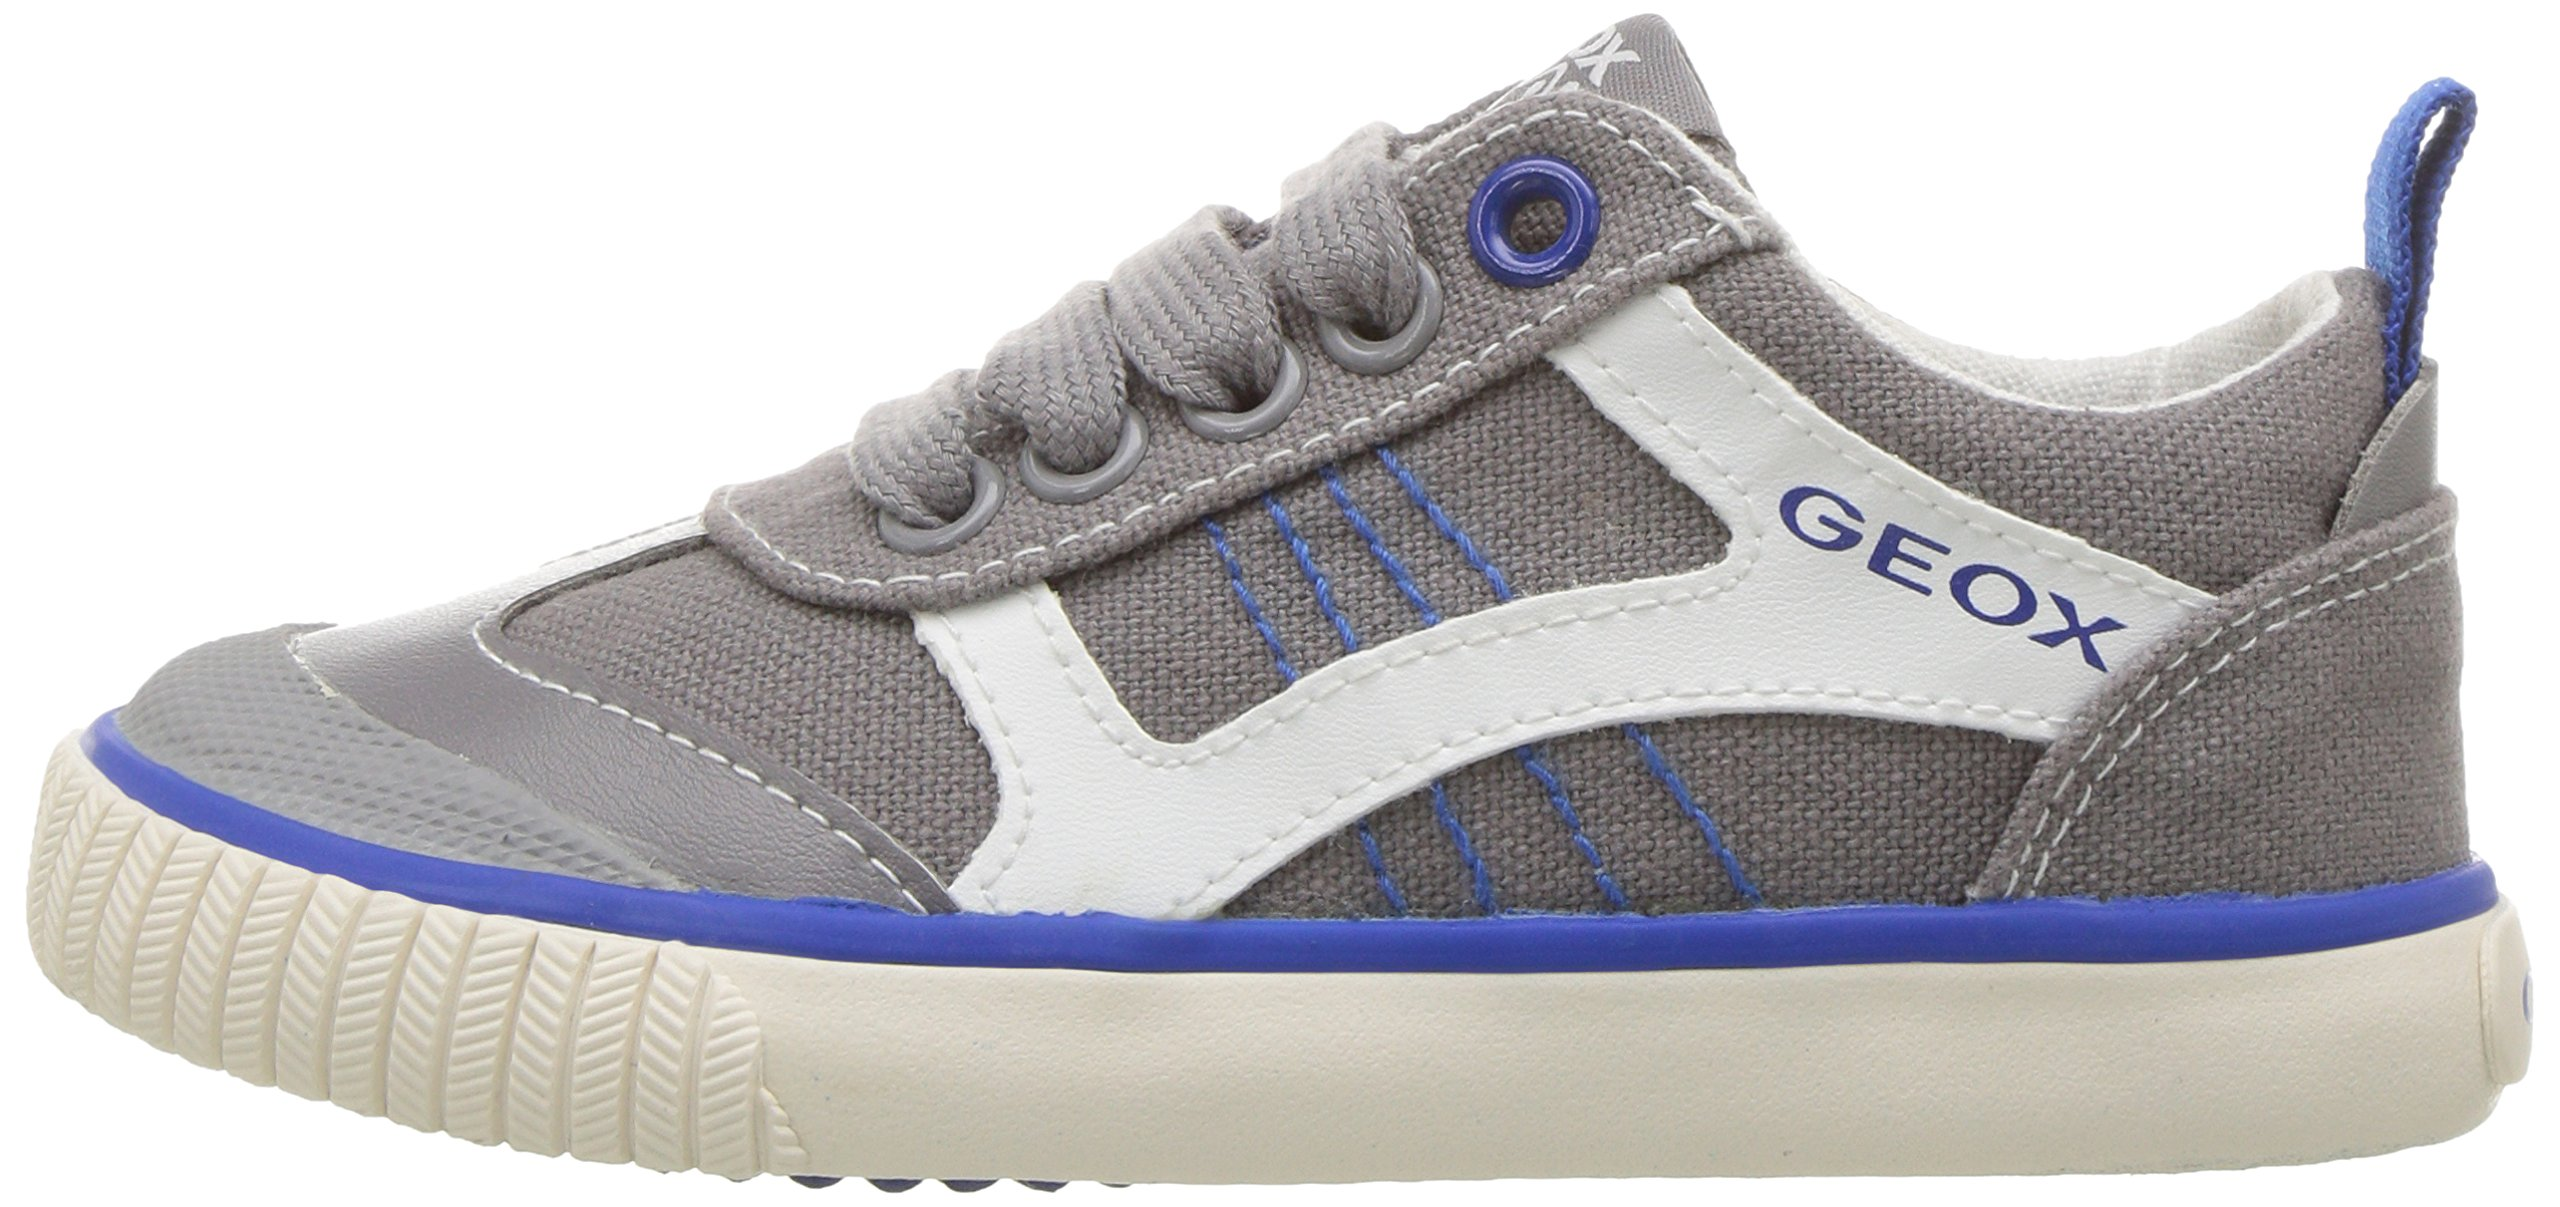 Geox Boys' JR KIWIBOY 89 Slip-On Grey/Royal 36 EU/4 M US Big Kid by Geox (Image #5)